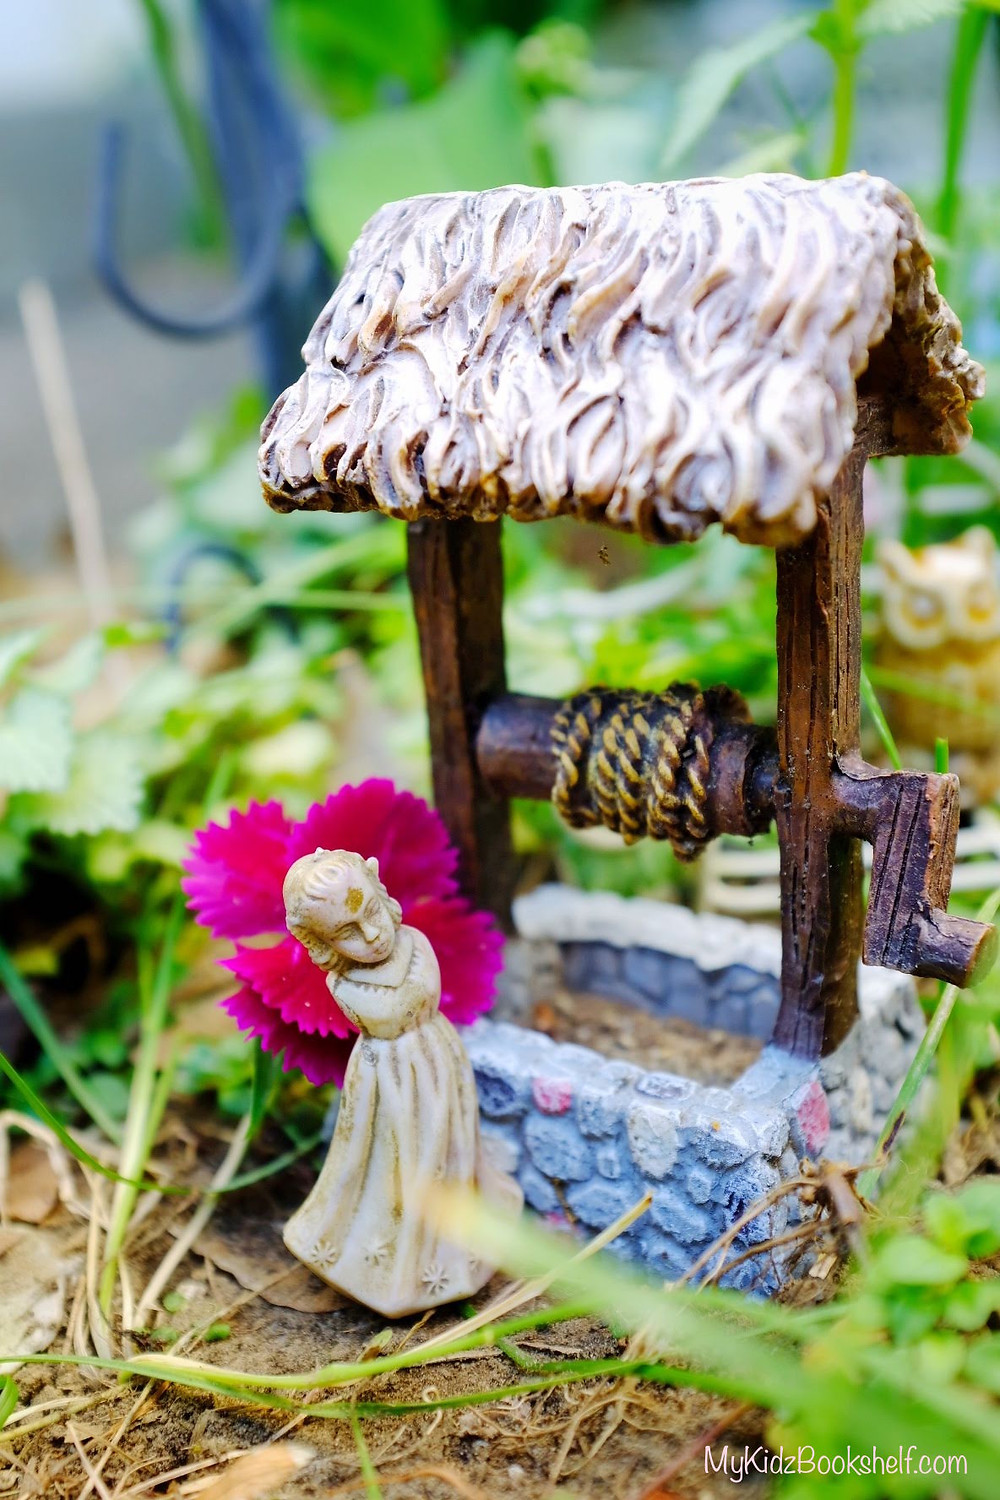 fairy garden wishing well miniature with little angel figurine and flower